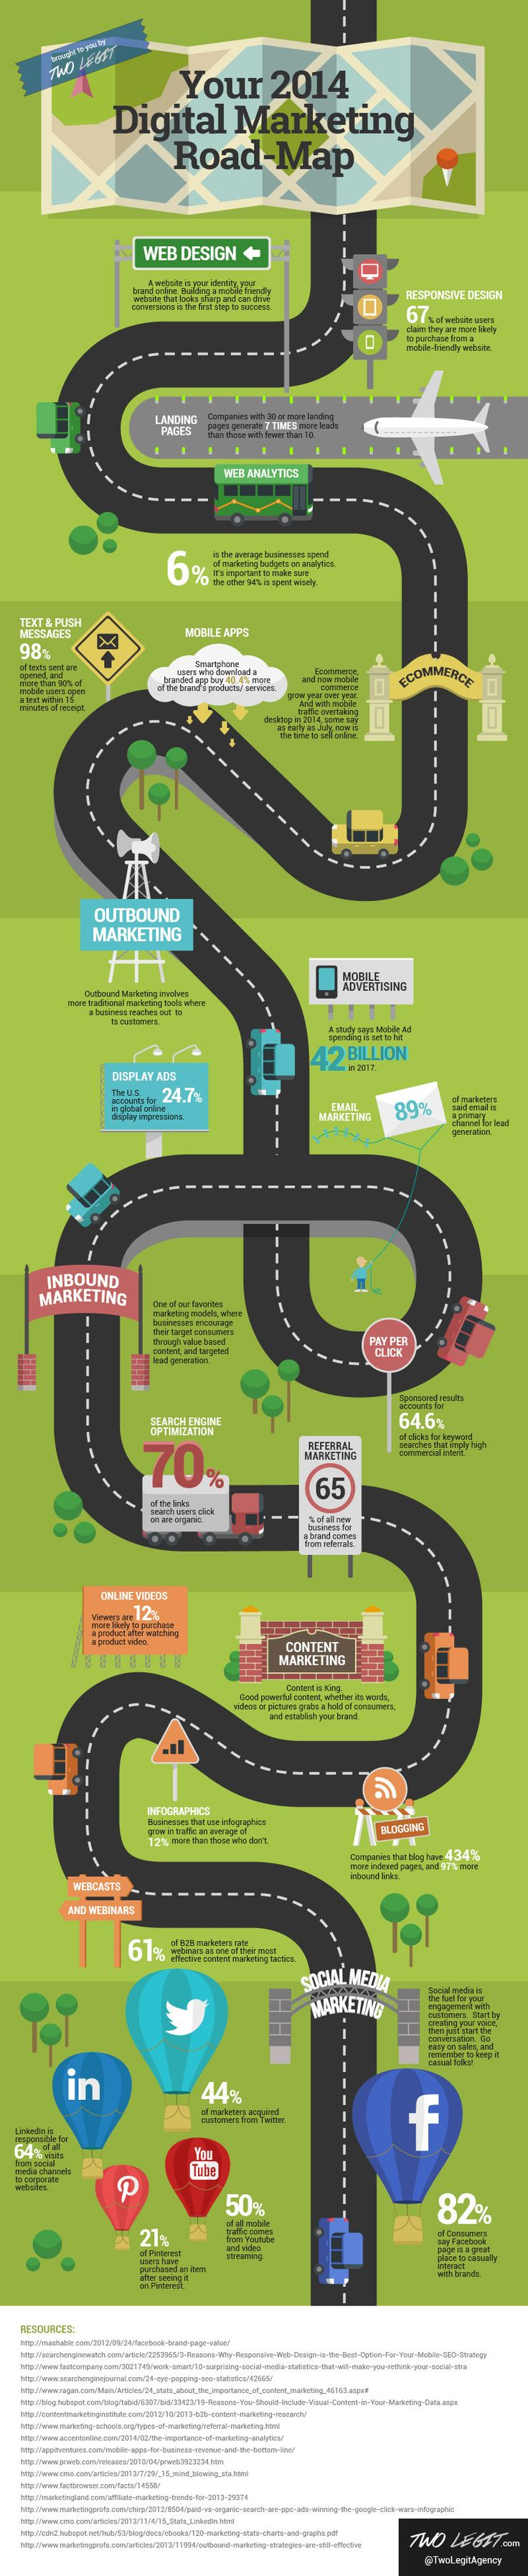 Your Digital Marketing Roadmap - infographic